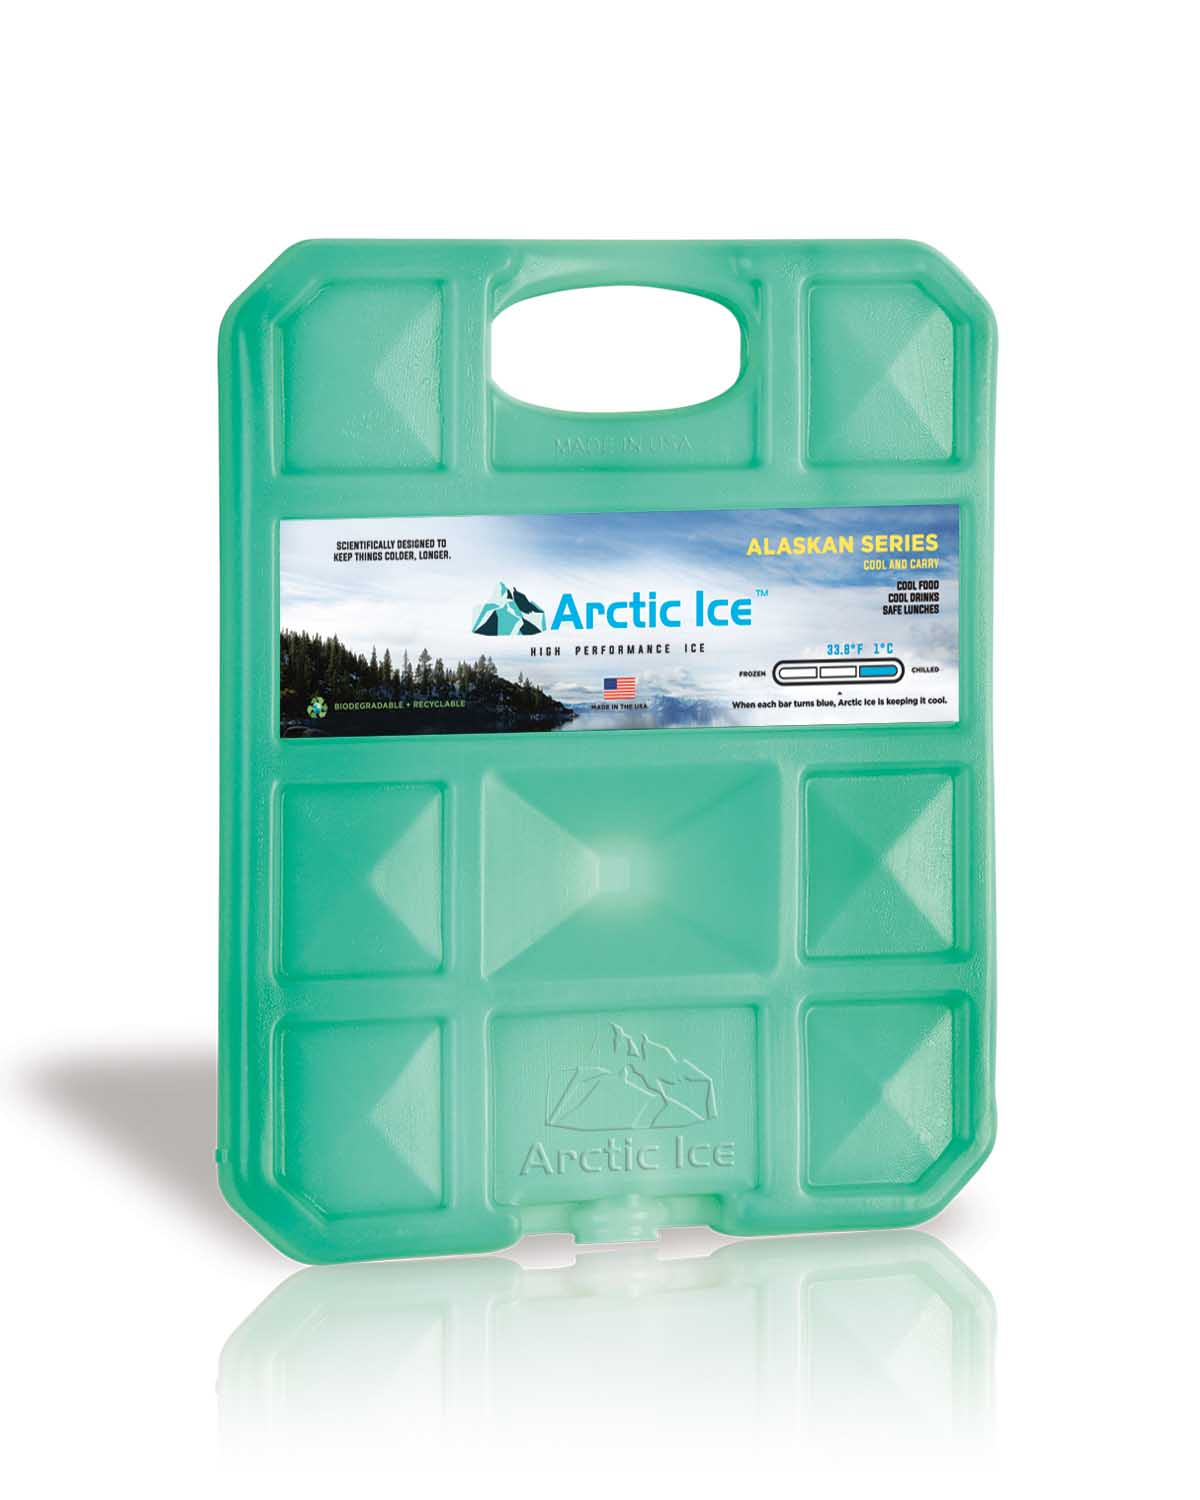 Arctic Ice Alaskan Series Re-usable Ice Pack